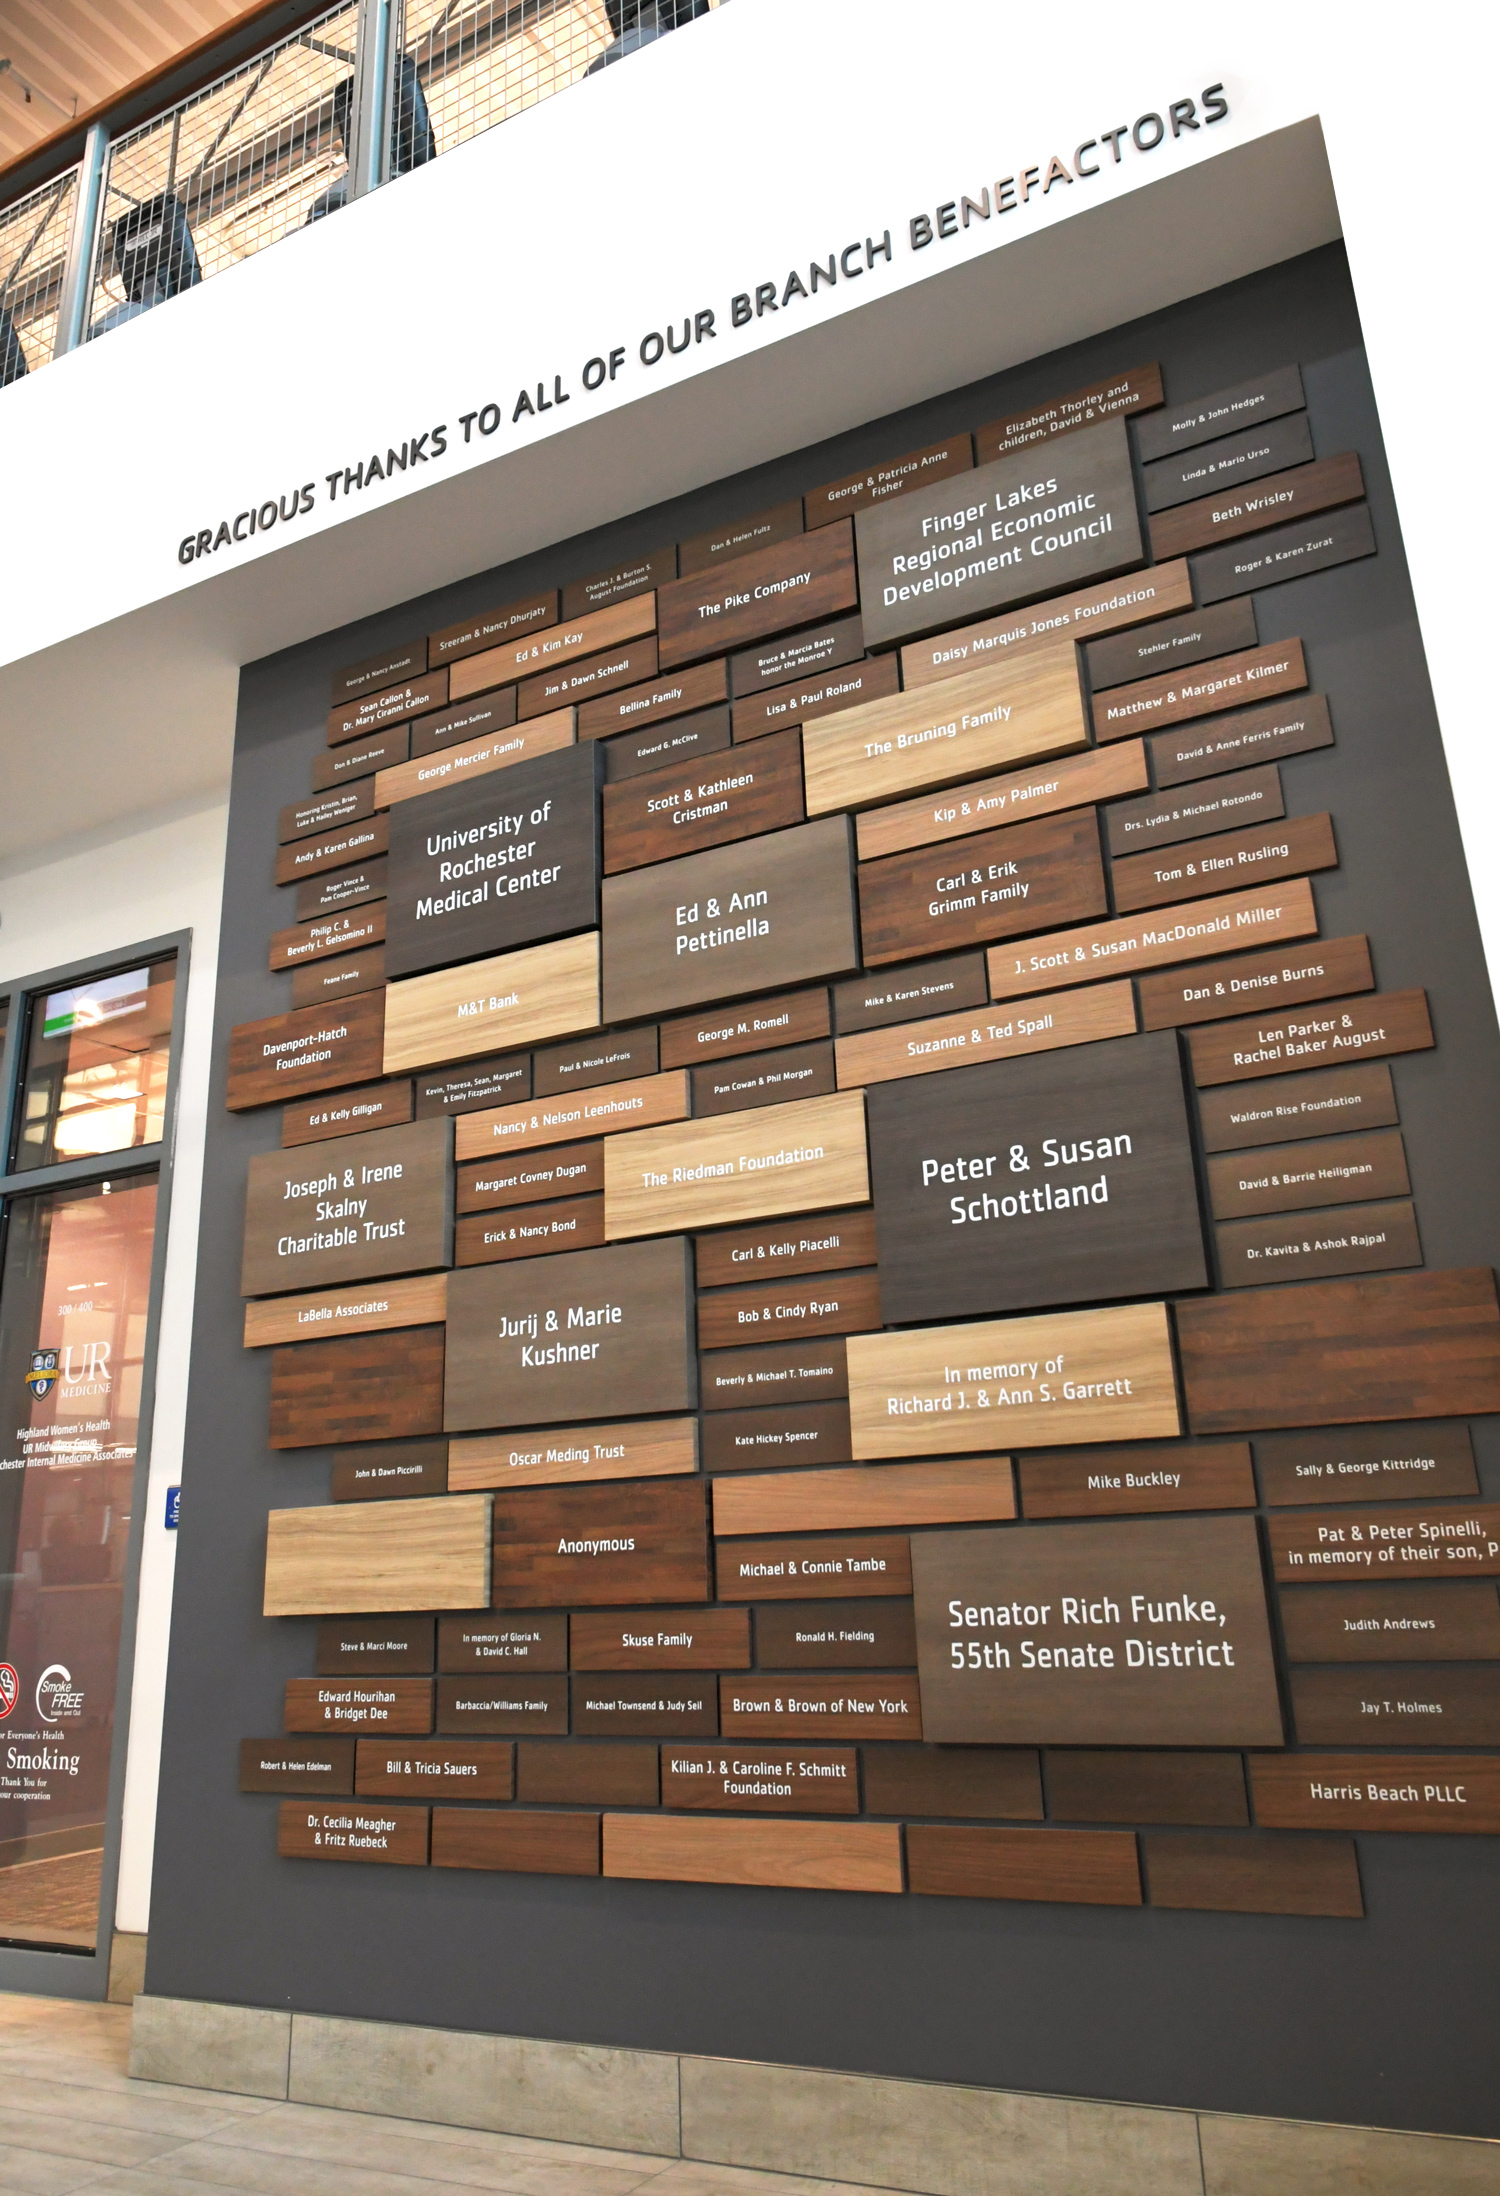 Applaud Regonition Wall at YMCA